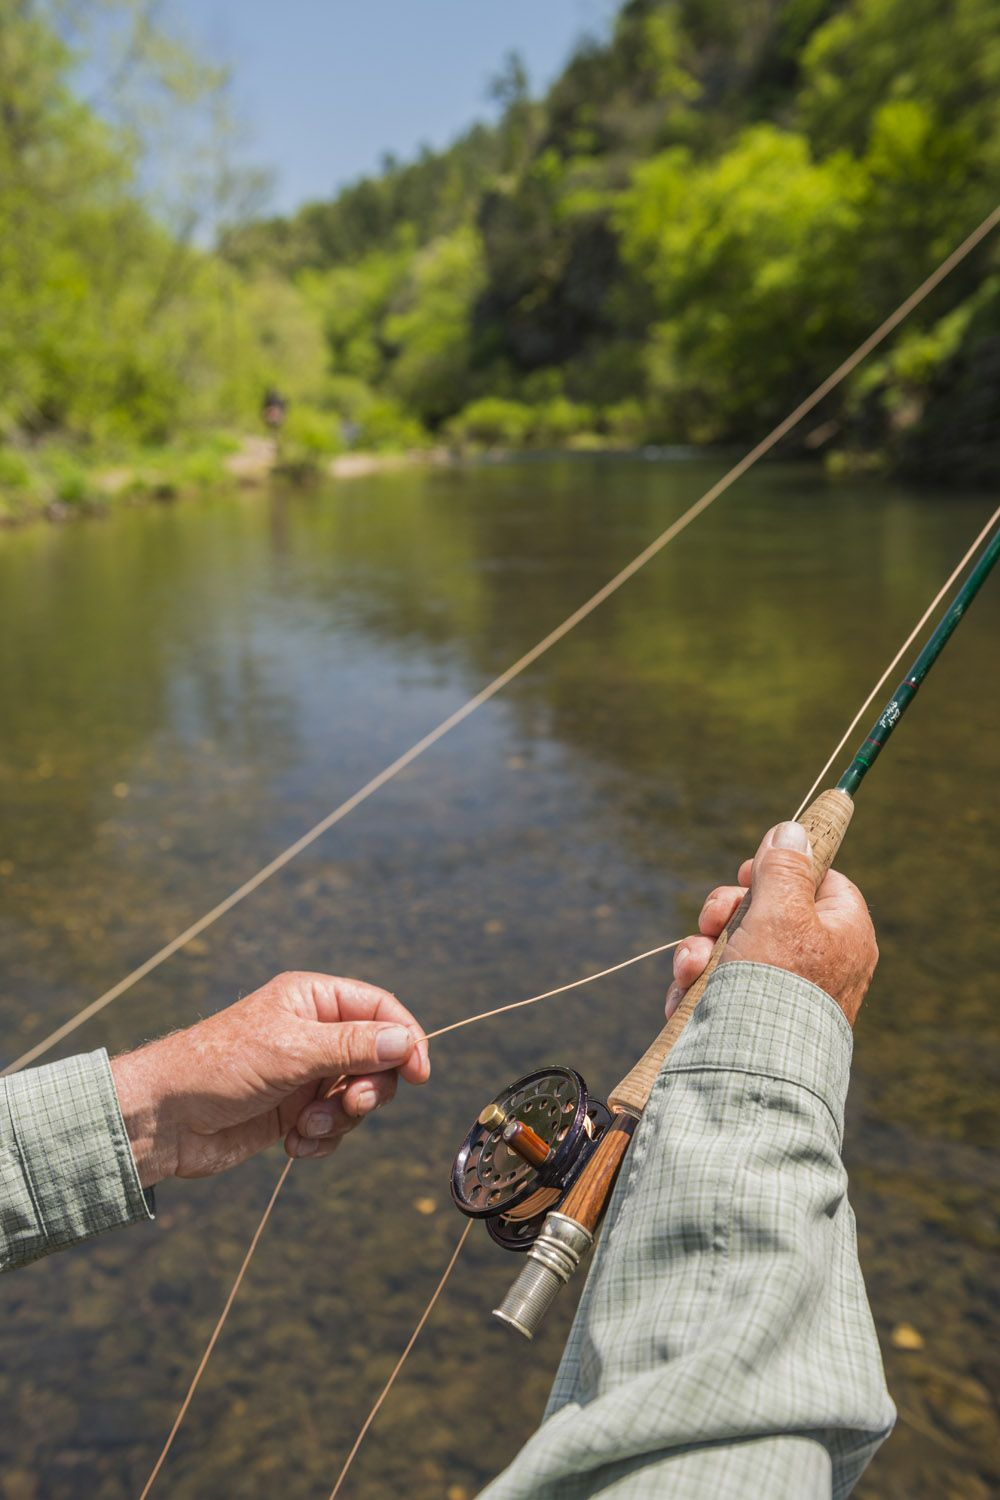 Pin By Helaine Holbrook On Clay S Board Fly Fishing Fishing Tips Fish